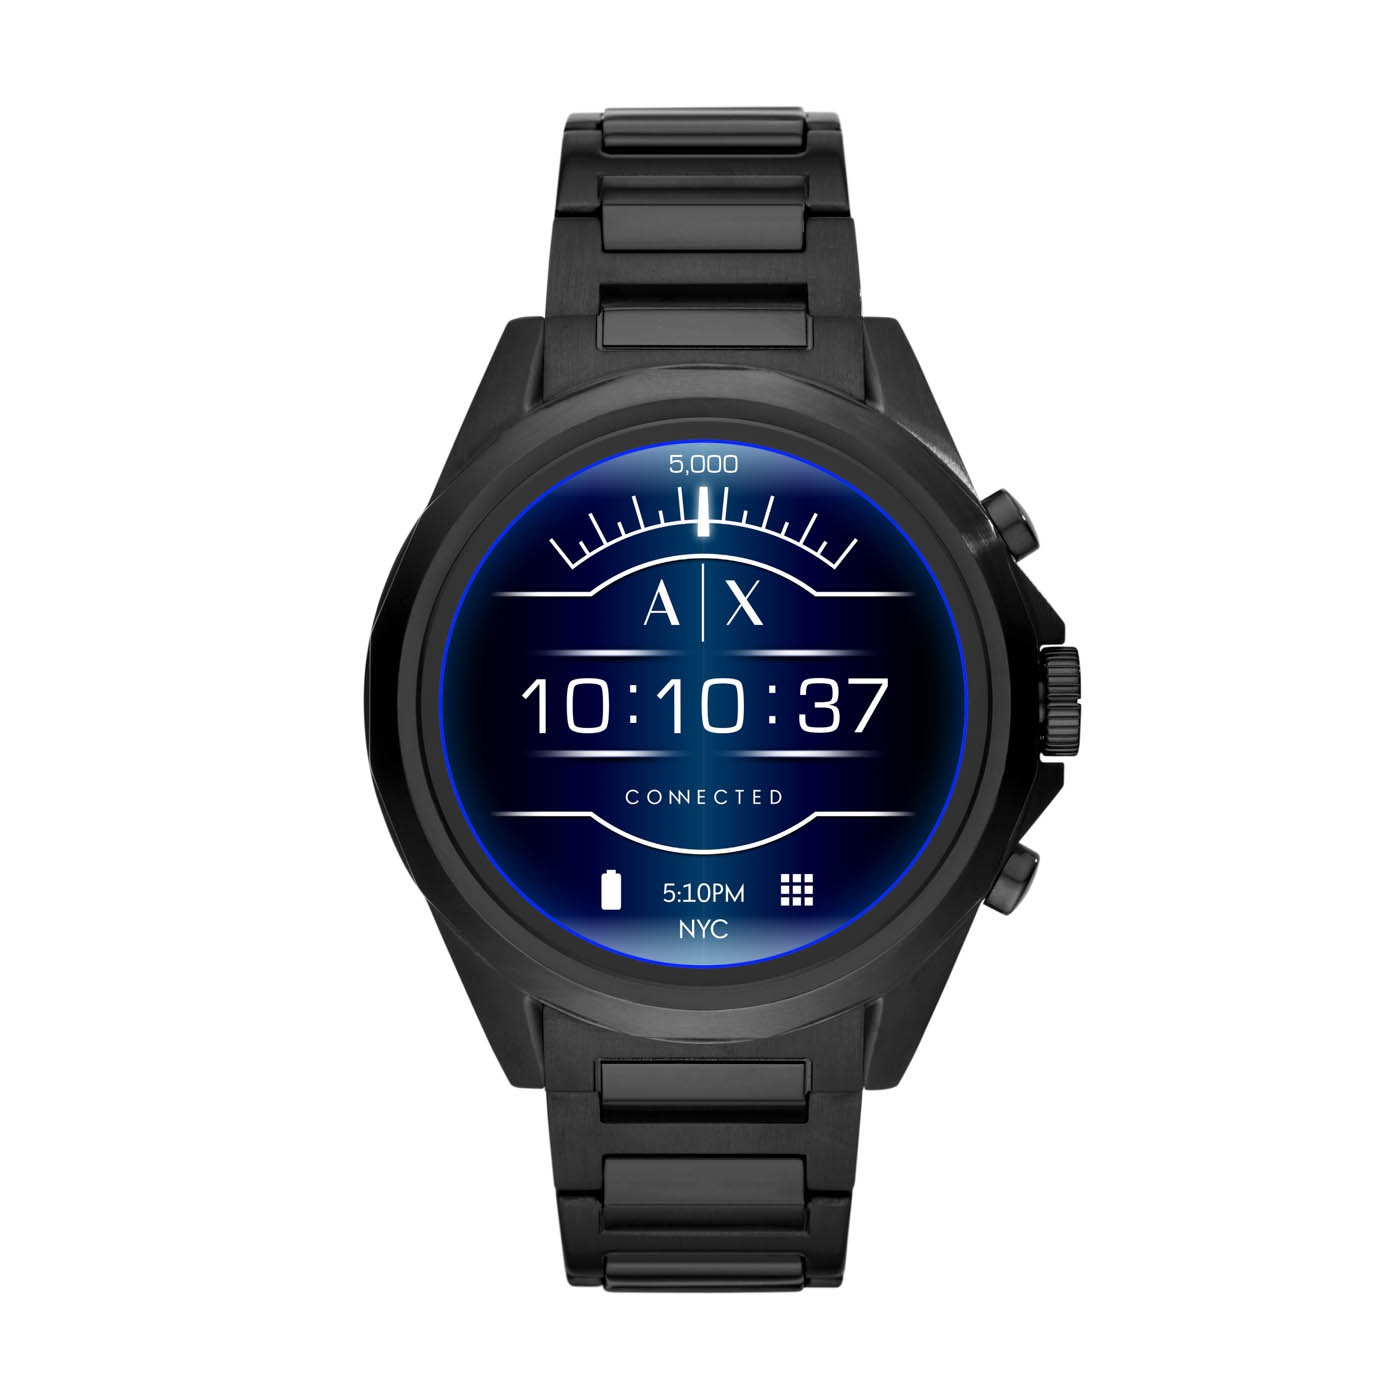 Bilde av Armani Exchange Connected Drexler Gen 4 Display Smartwatch AXT2002